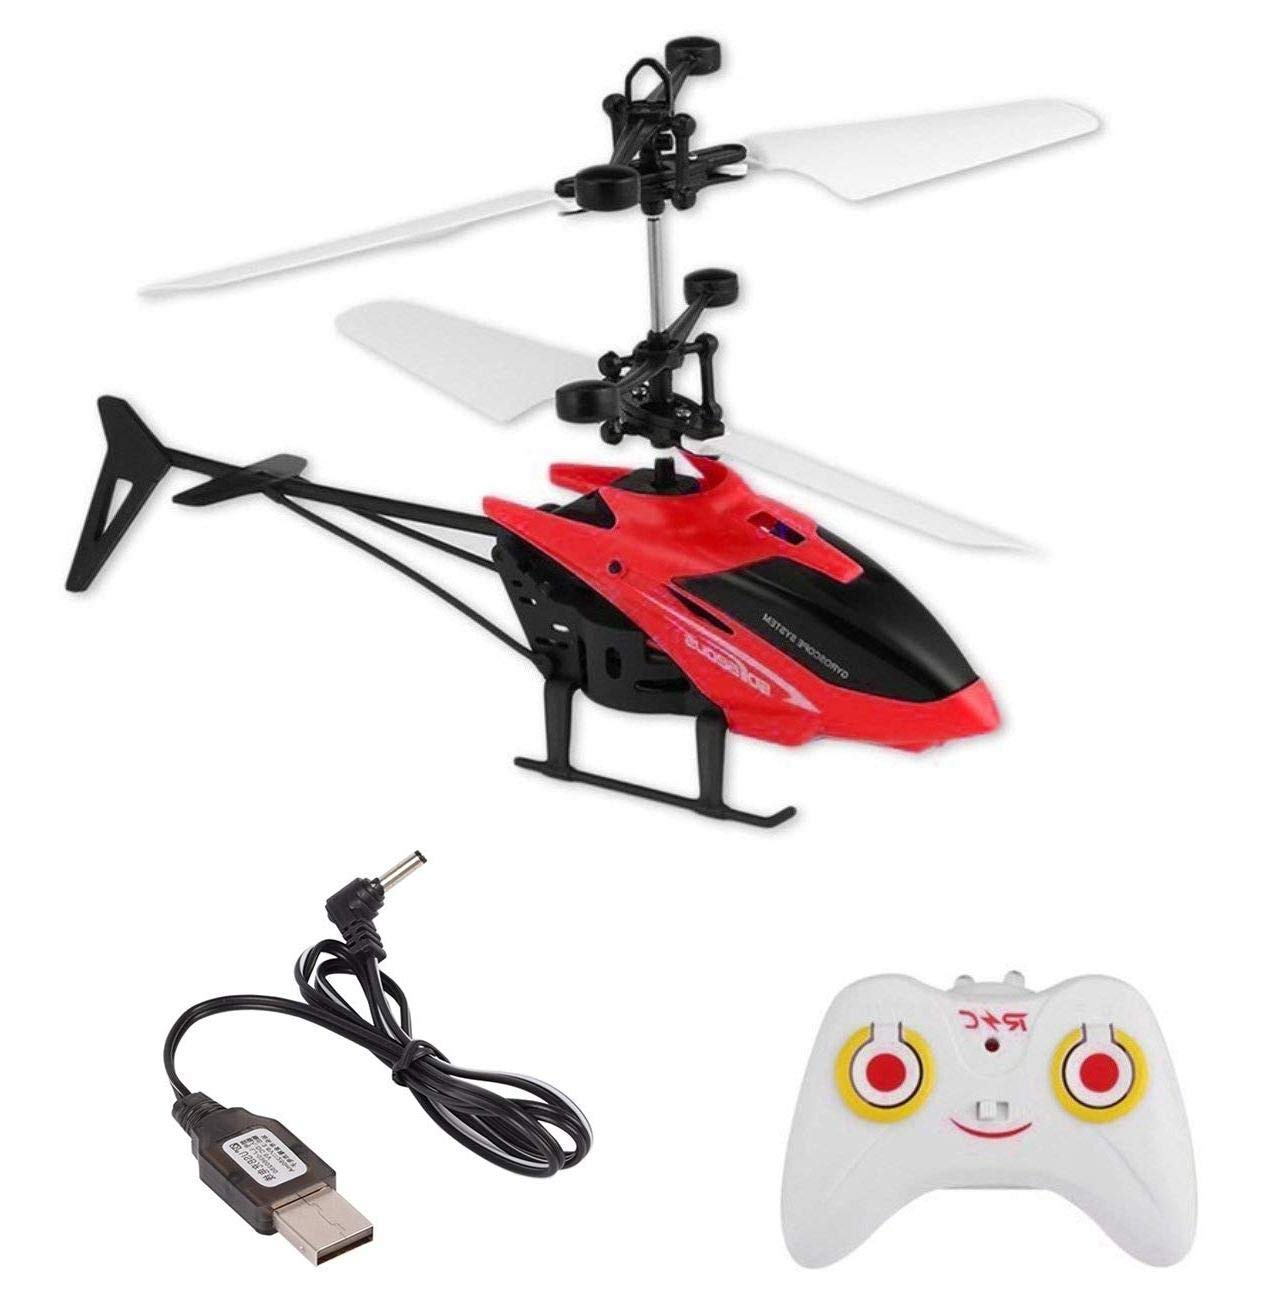 vGRASSP Kids Induction Indoor 2 in 1 High Quality Helicopter with only Up and Down Controls on Remote, along with Hand Controlled